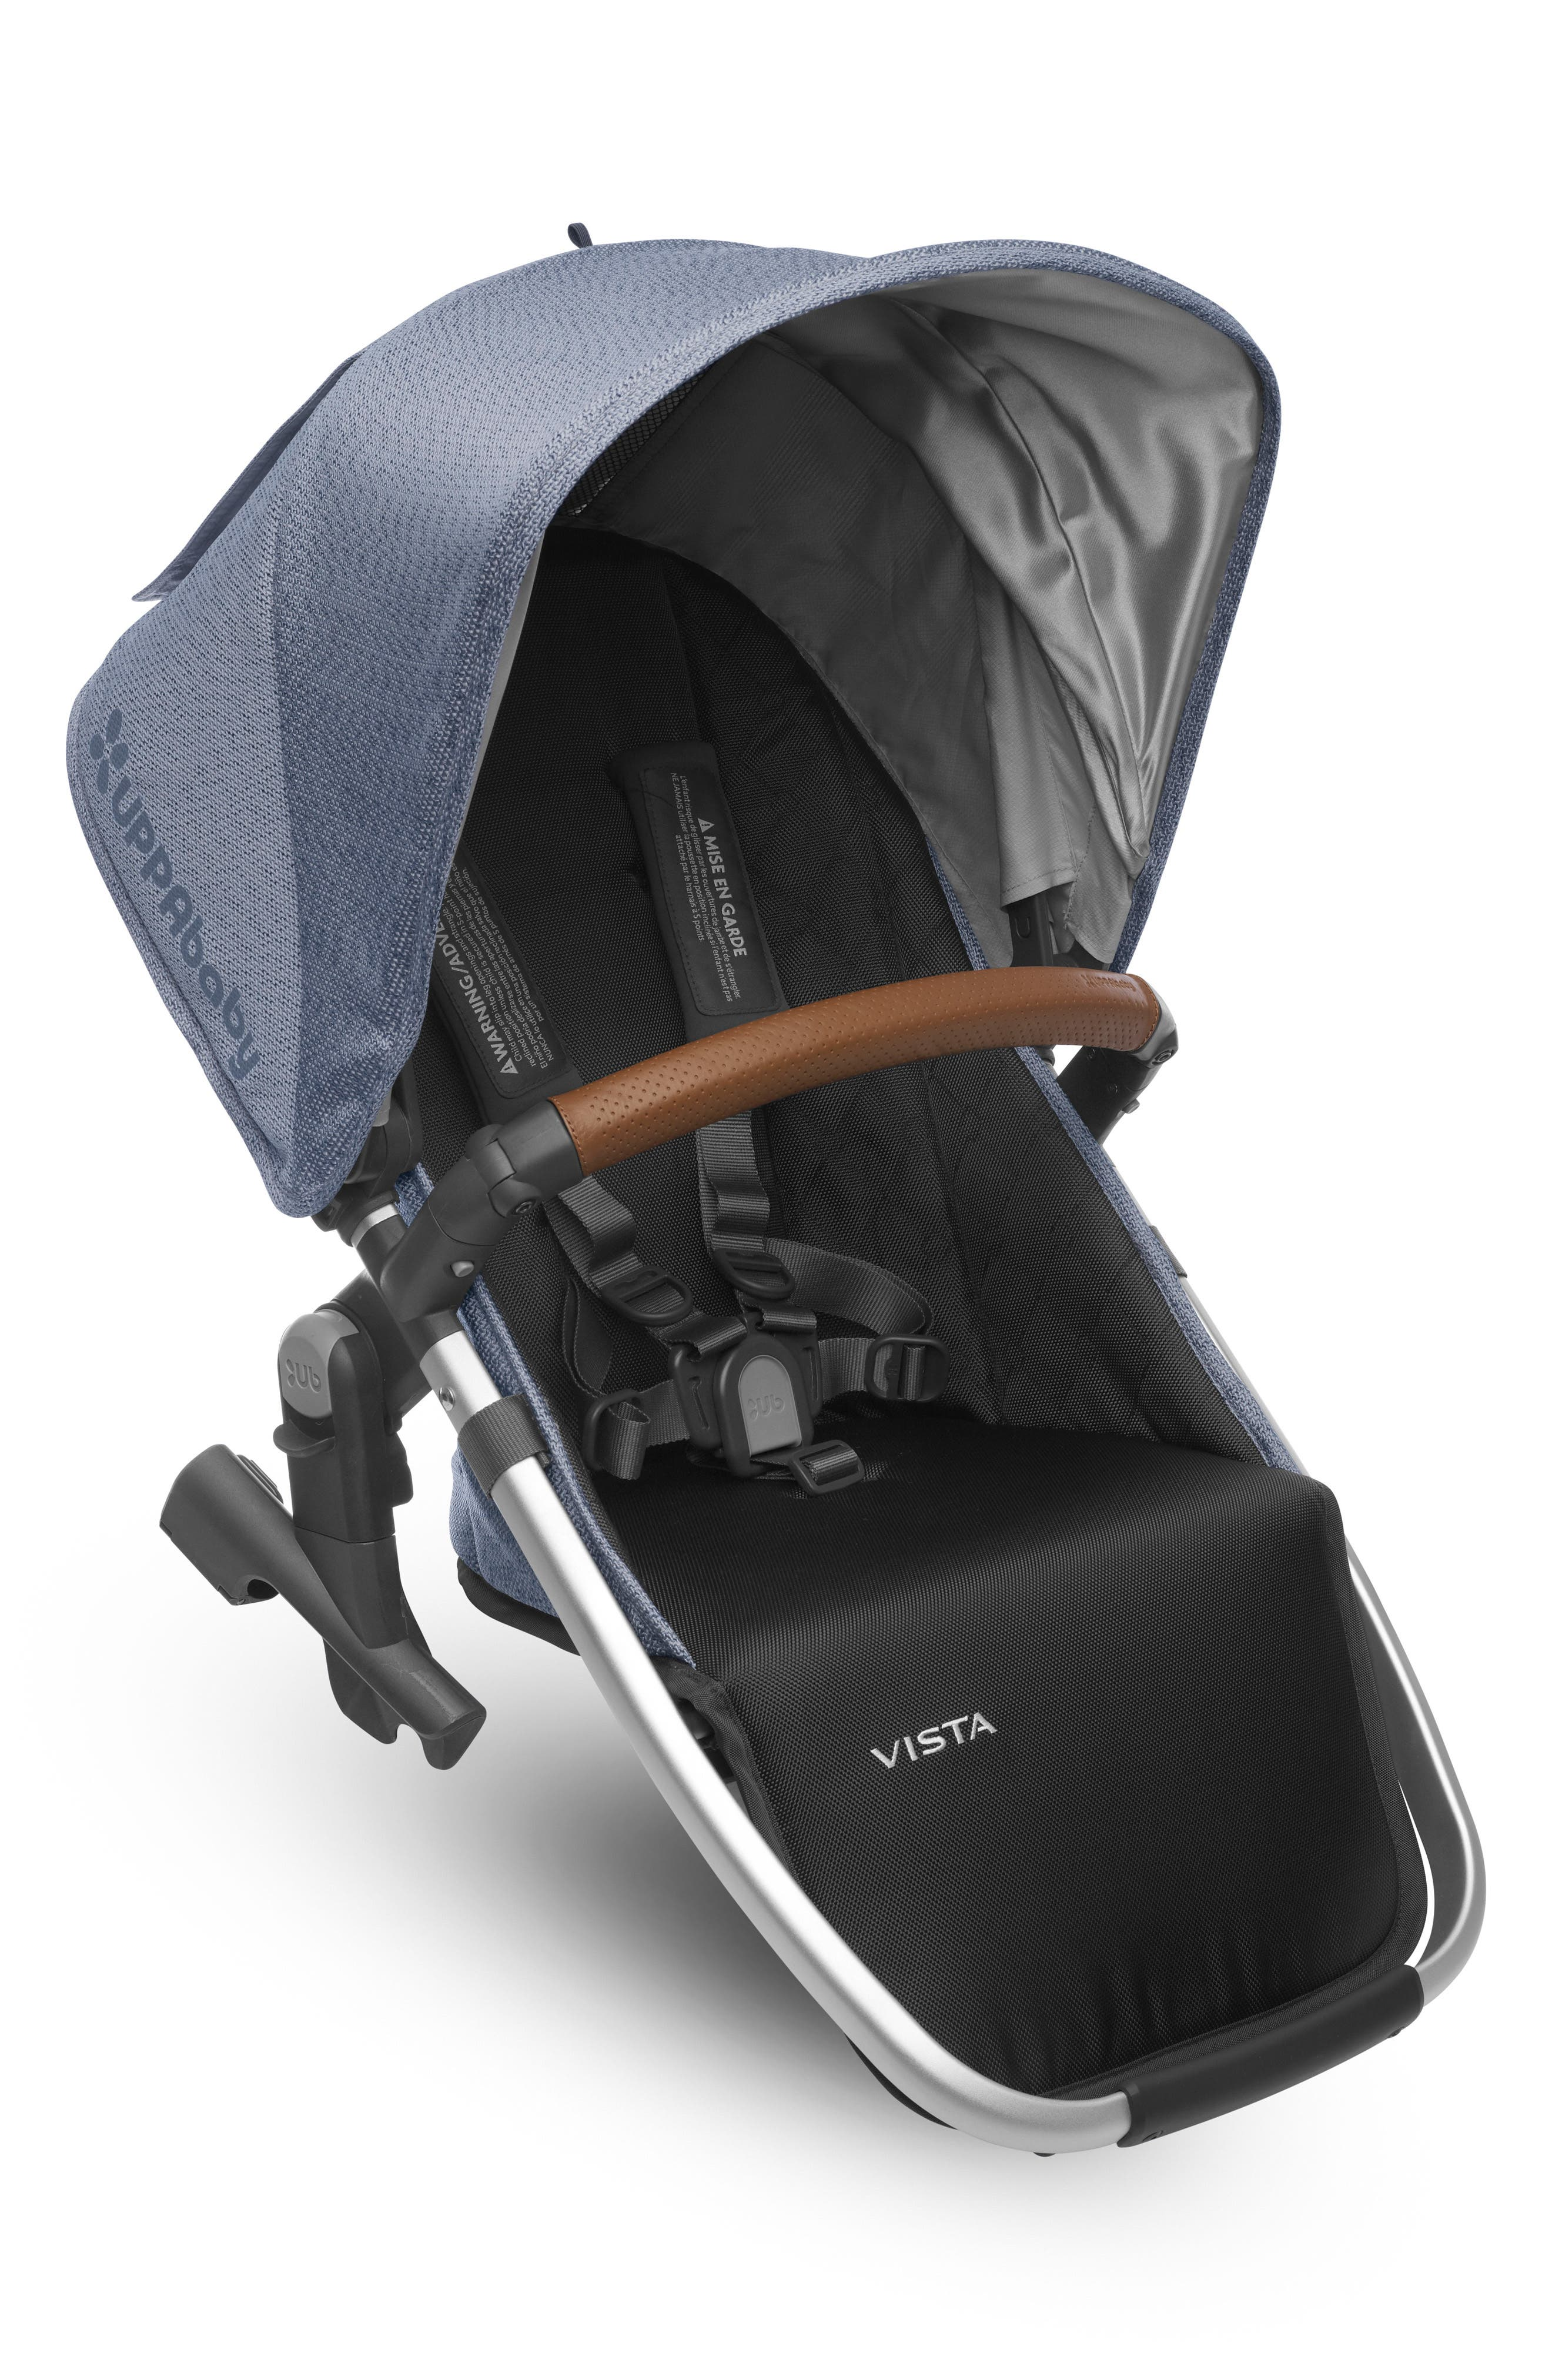 Main Image - UPPAbaby 2017 Limited Edition Henry Rumble Seat for VISTA Stroller